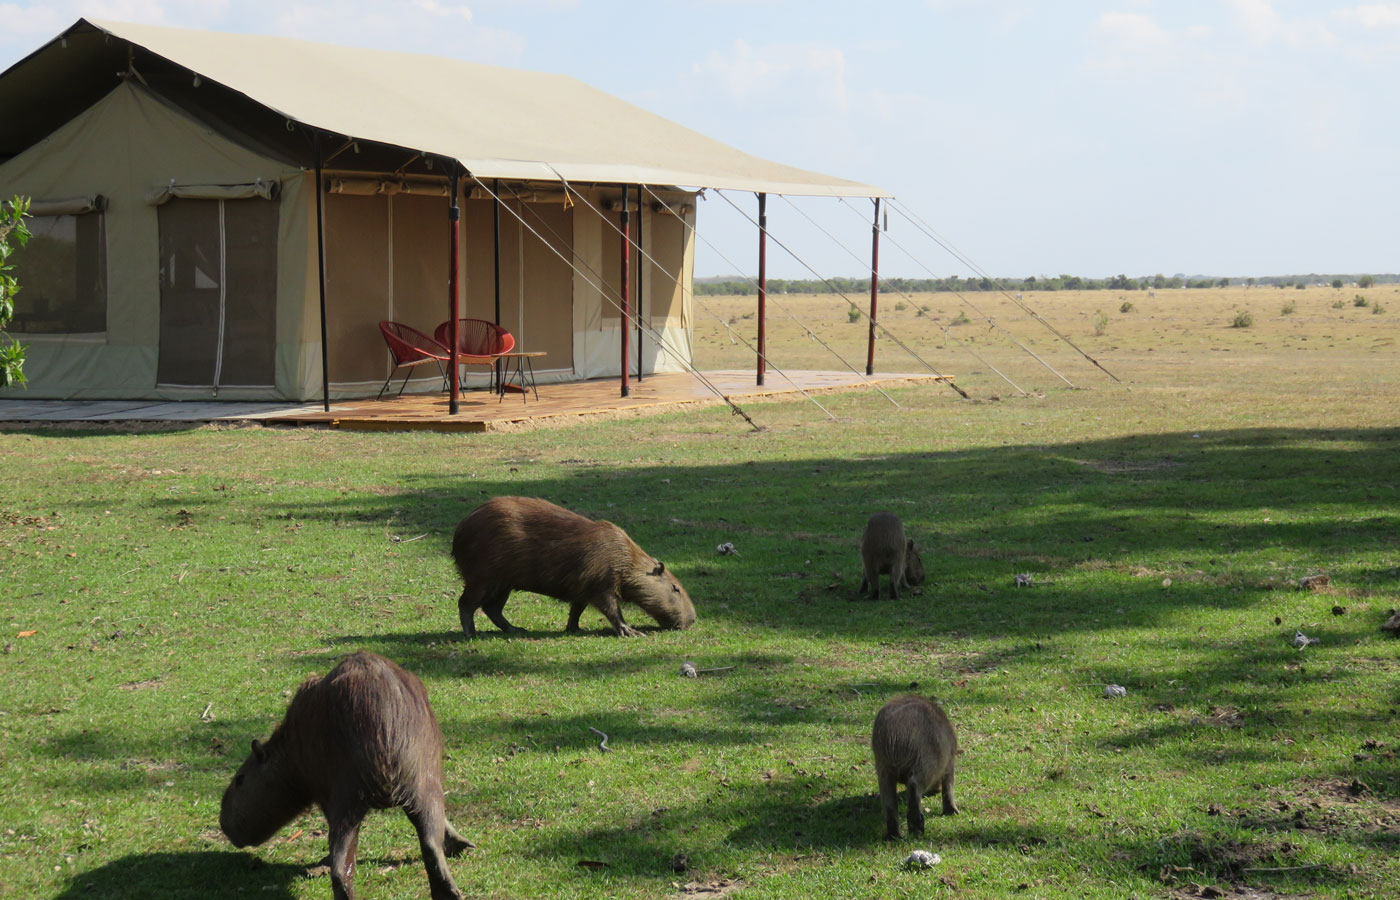 Wildlife at Corocora Camp - Los Llanos